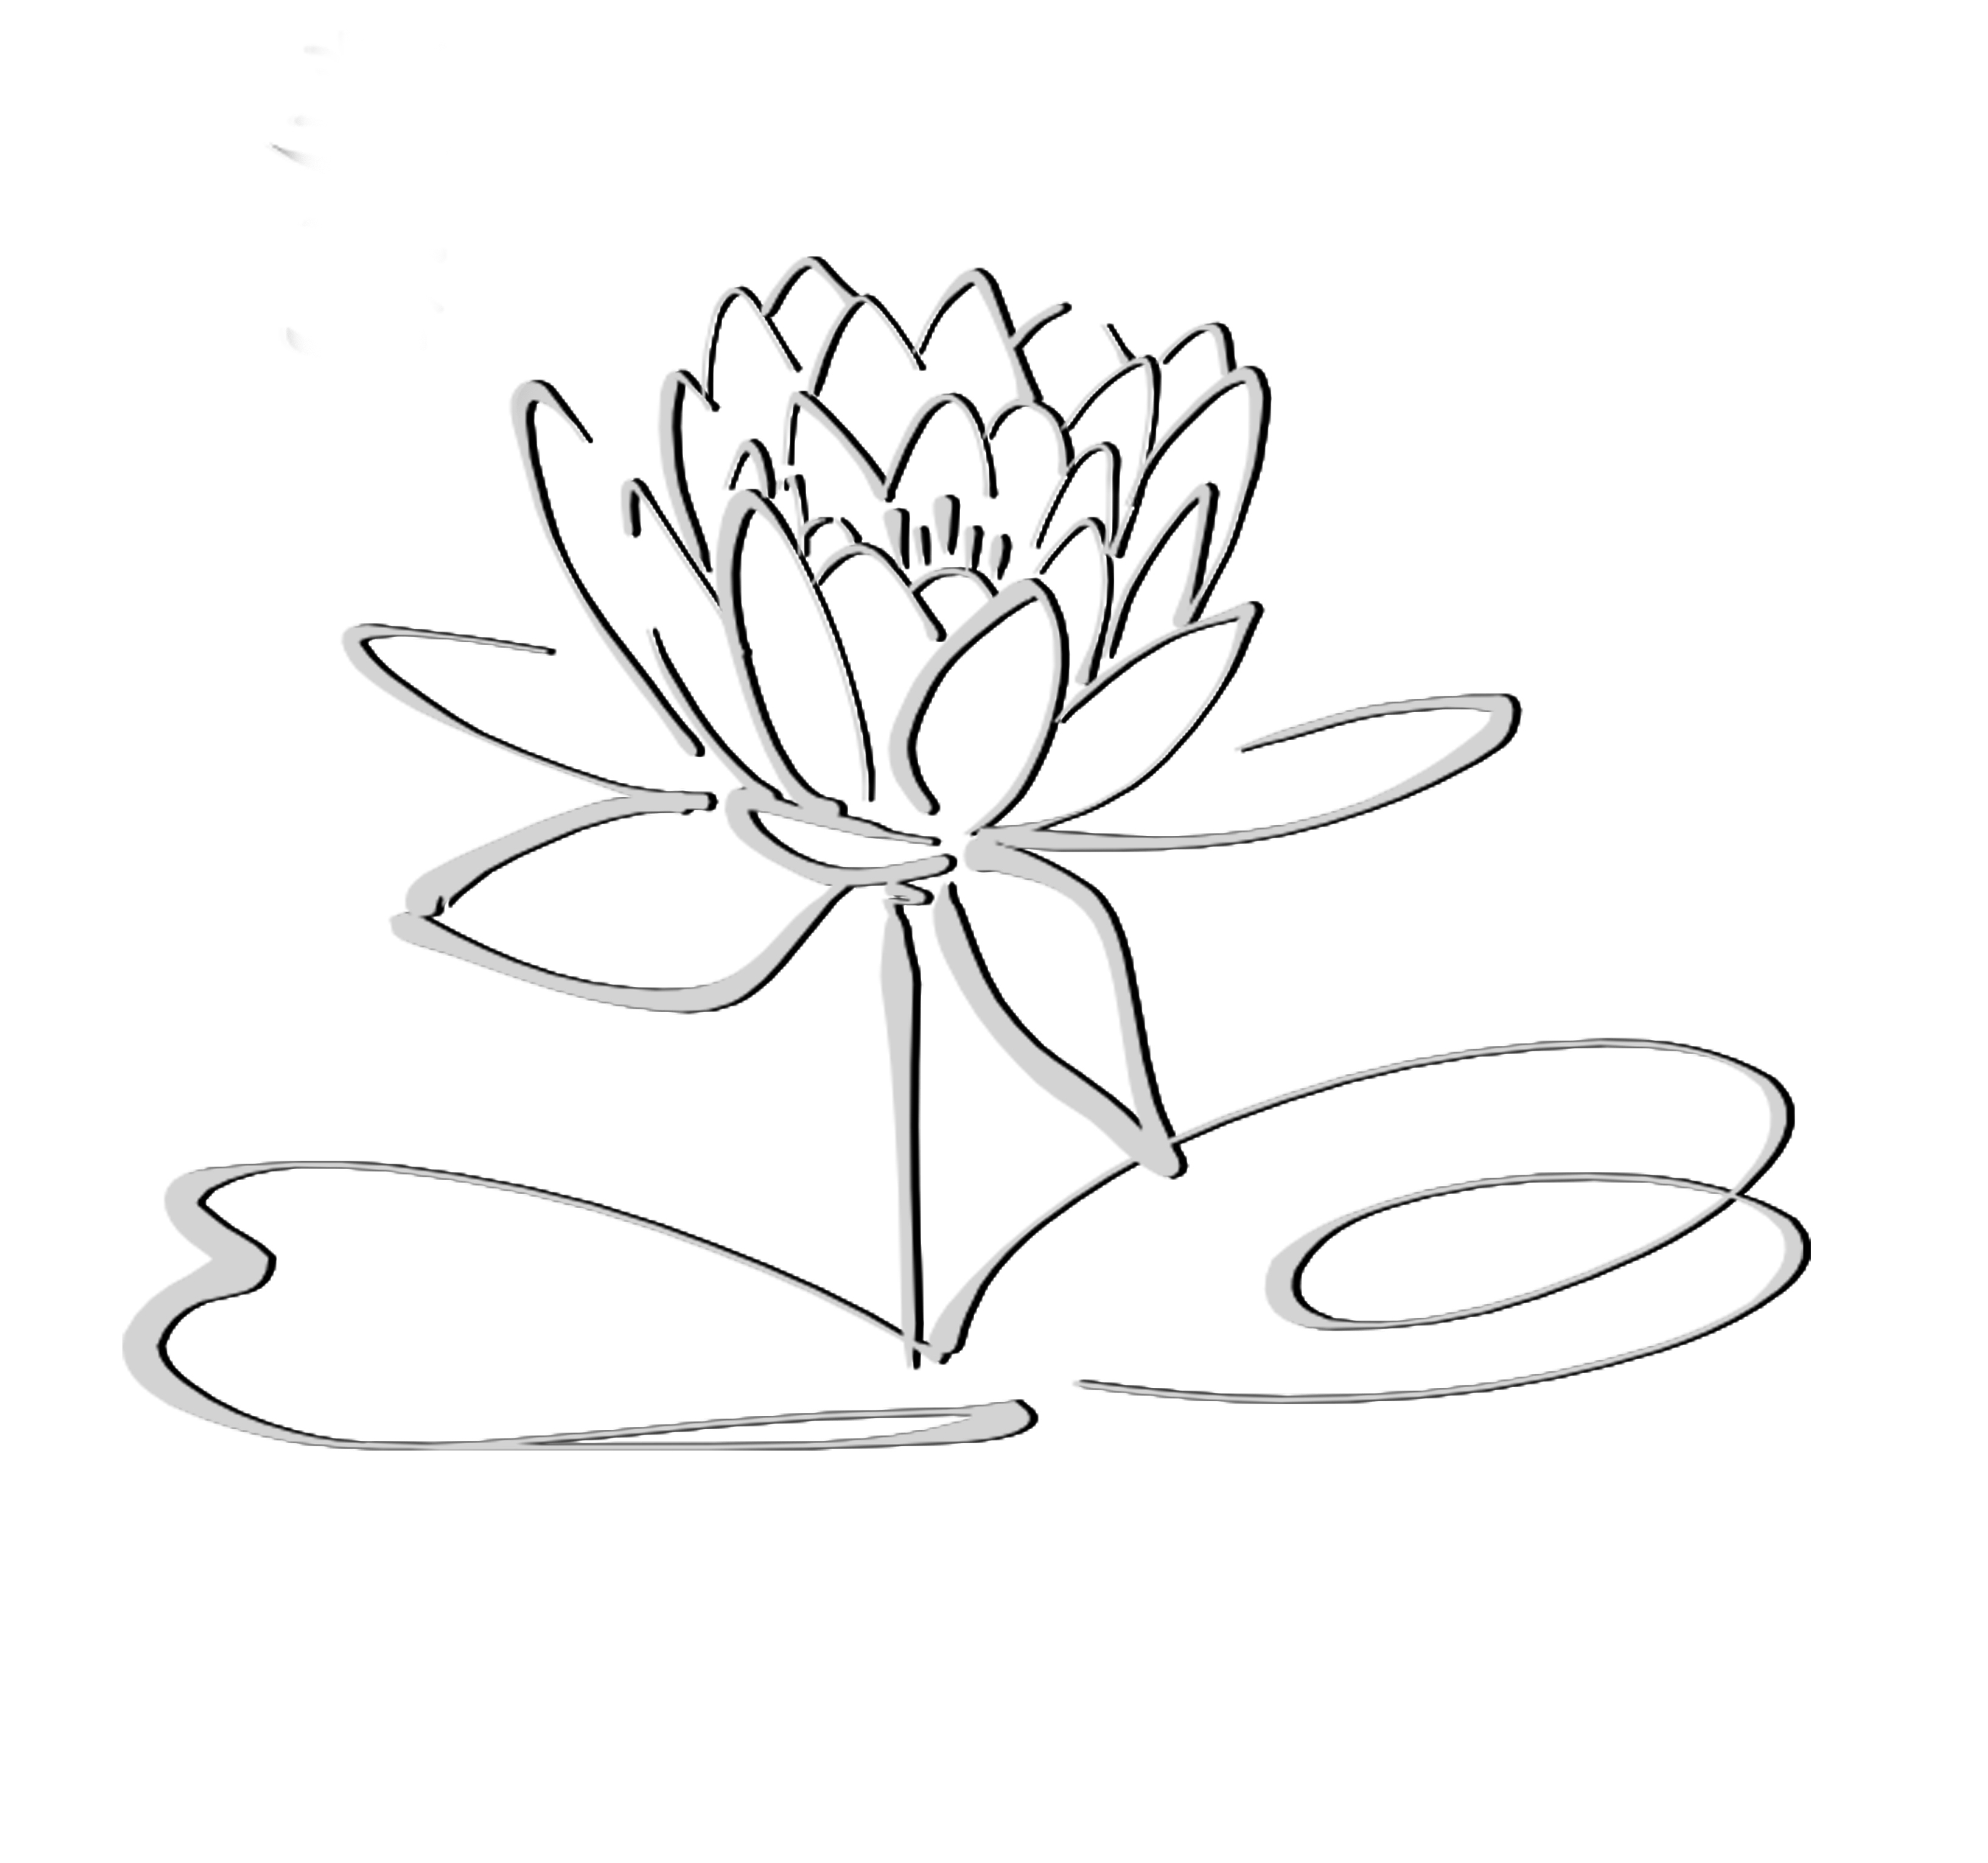 Lotus Flower Pencil Drawing At Getdrawings Free For Personal